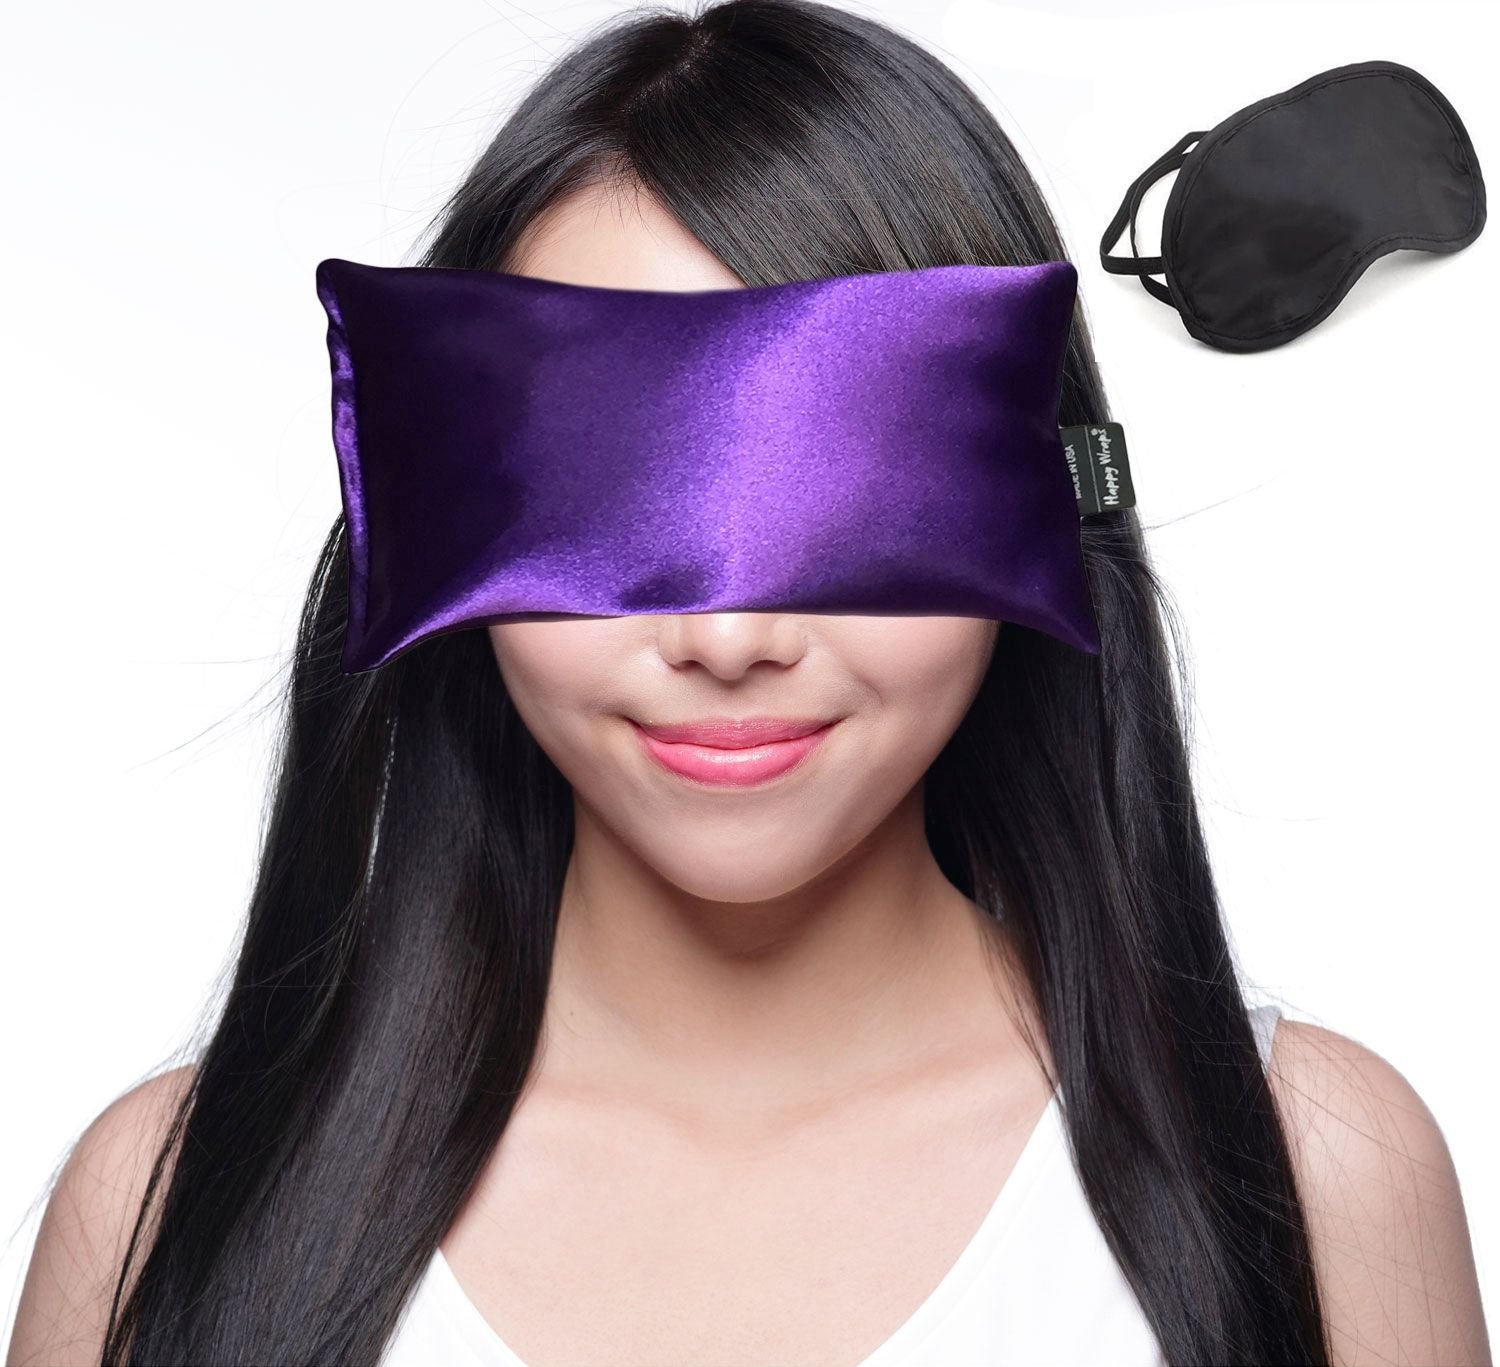 Hot Cold Lavender Eye Pillow and Eye Mask for Sleep, Yoga, Migraine Headaches, Stress Relief. By Happy Wraps - Amethyst